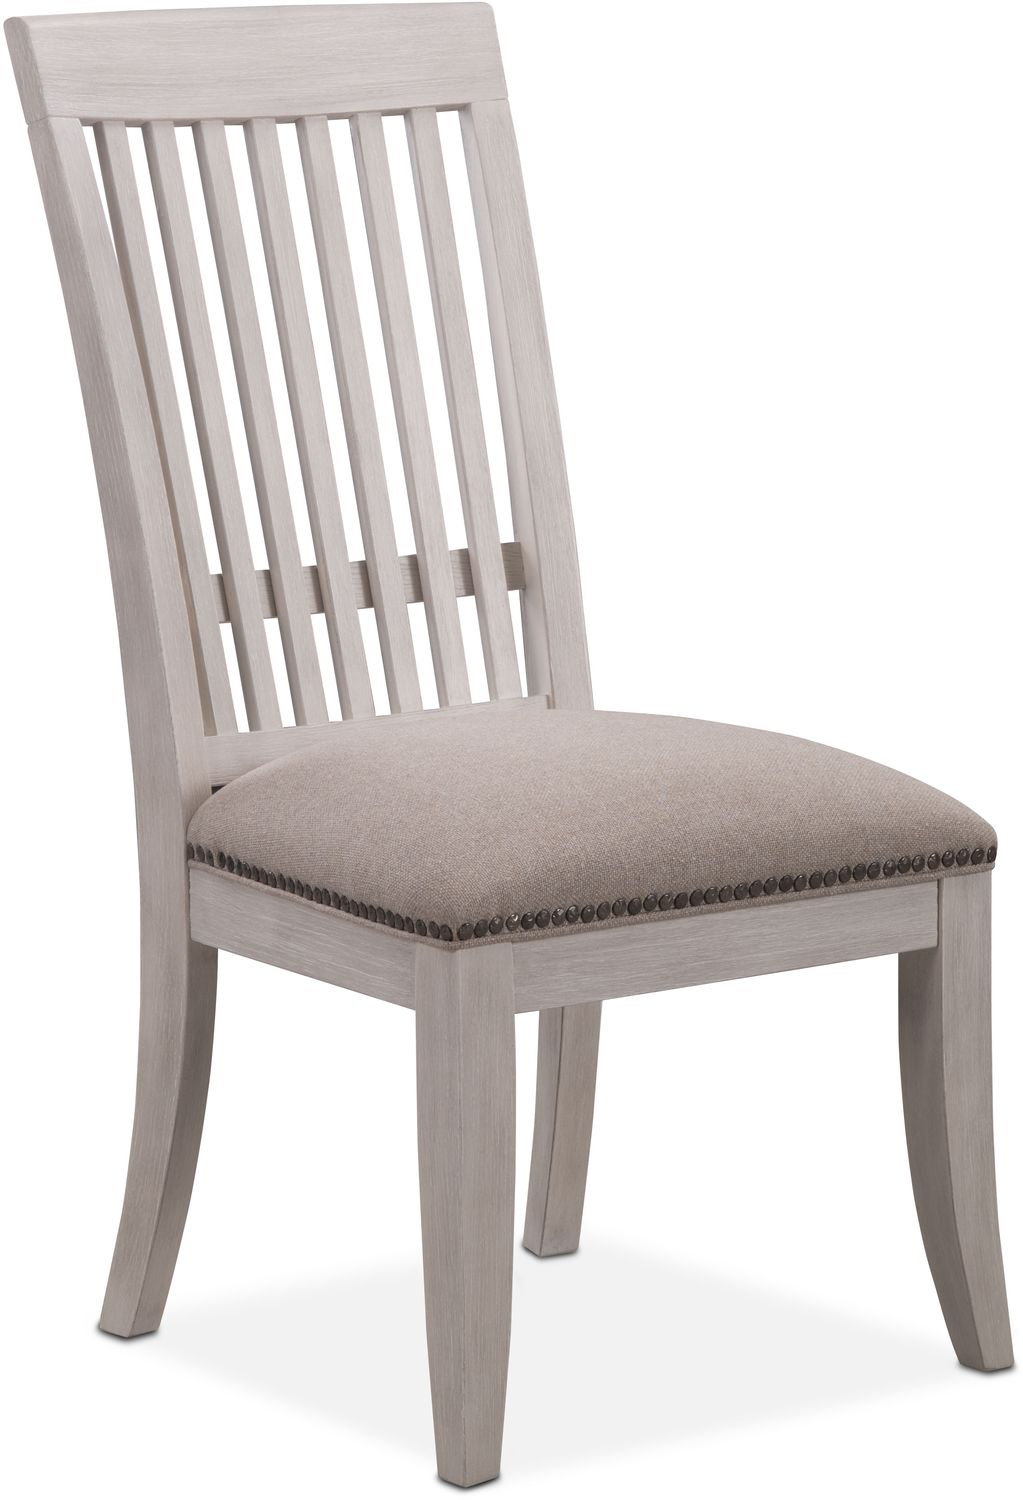 Lancaster Slat-Back Dining Chair | American Signature ...